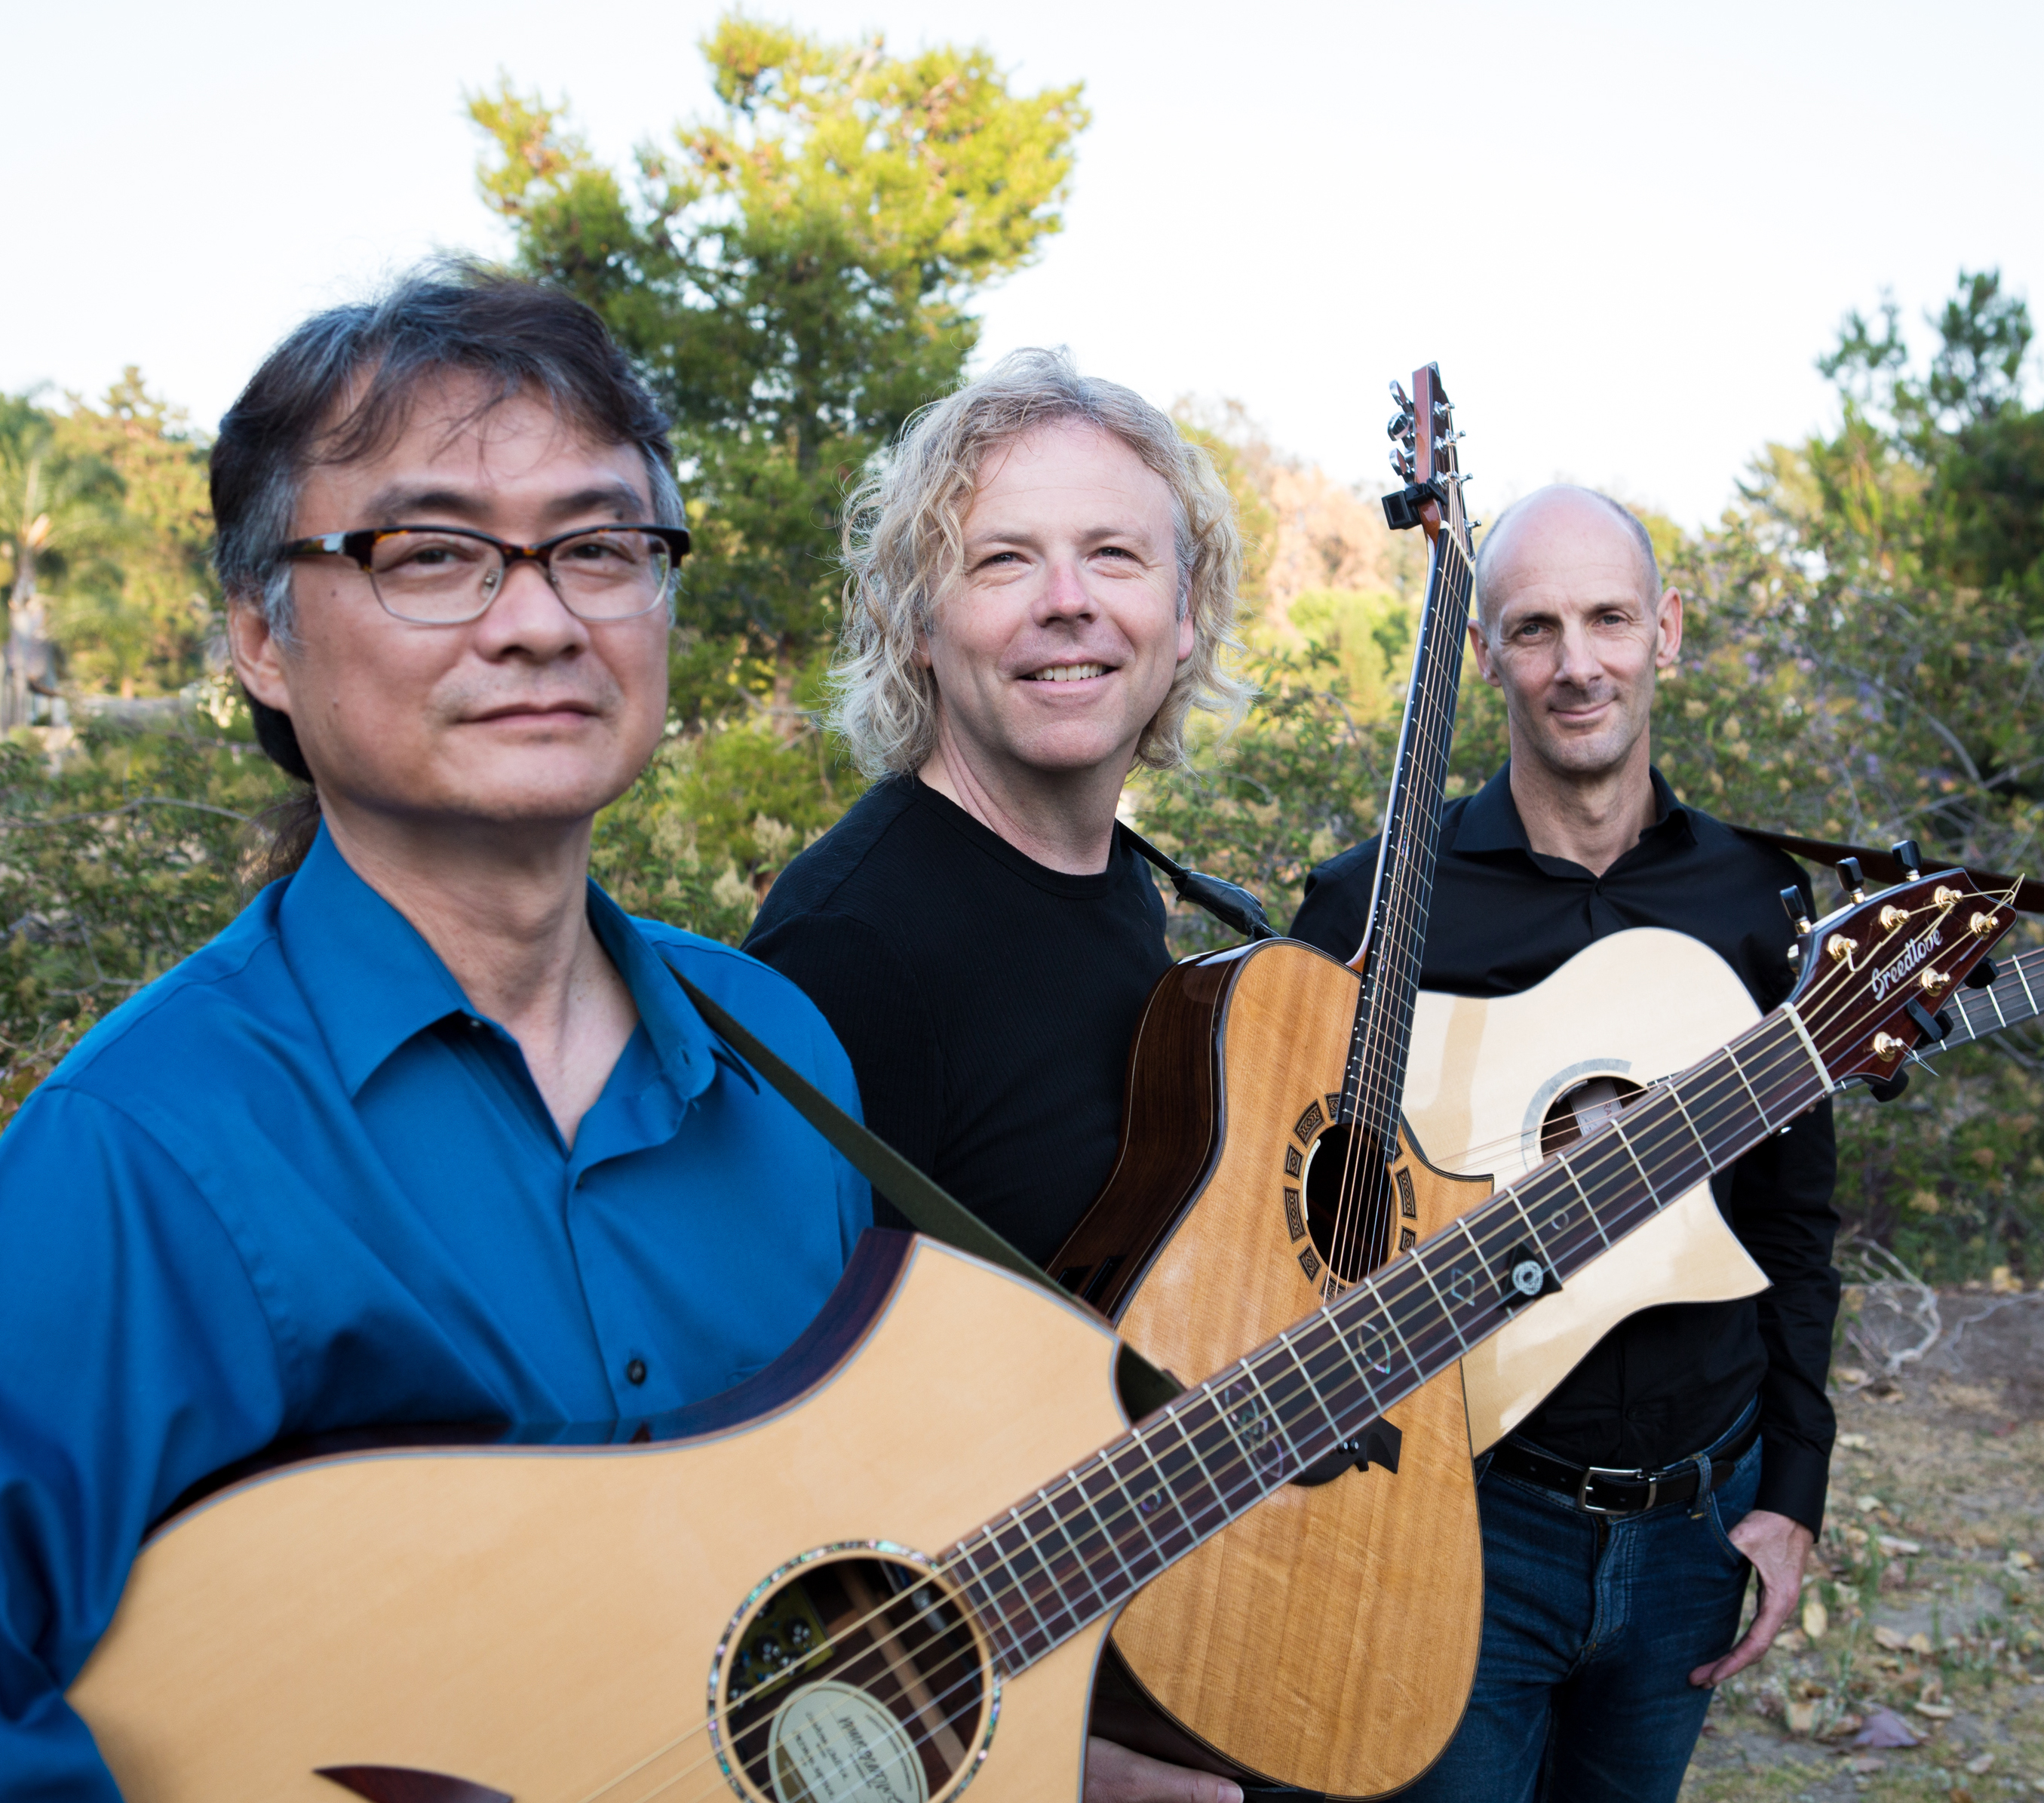 California Guitar Trio. © 2016 TourBusLive.com